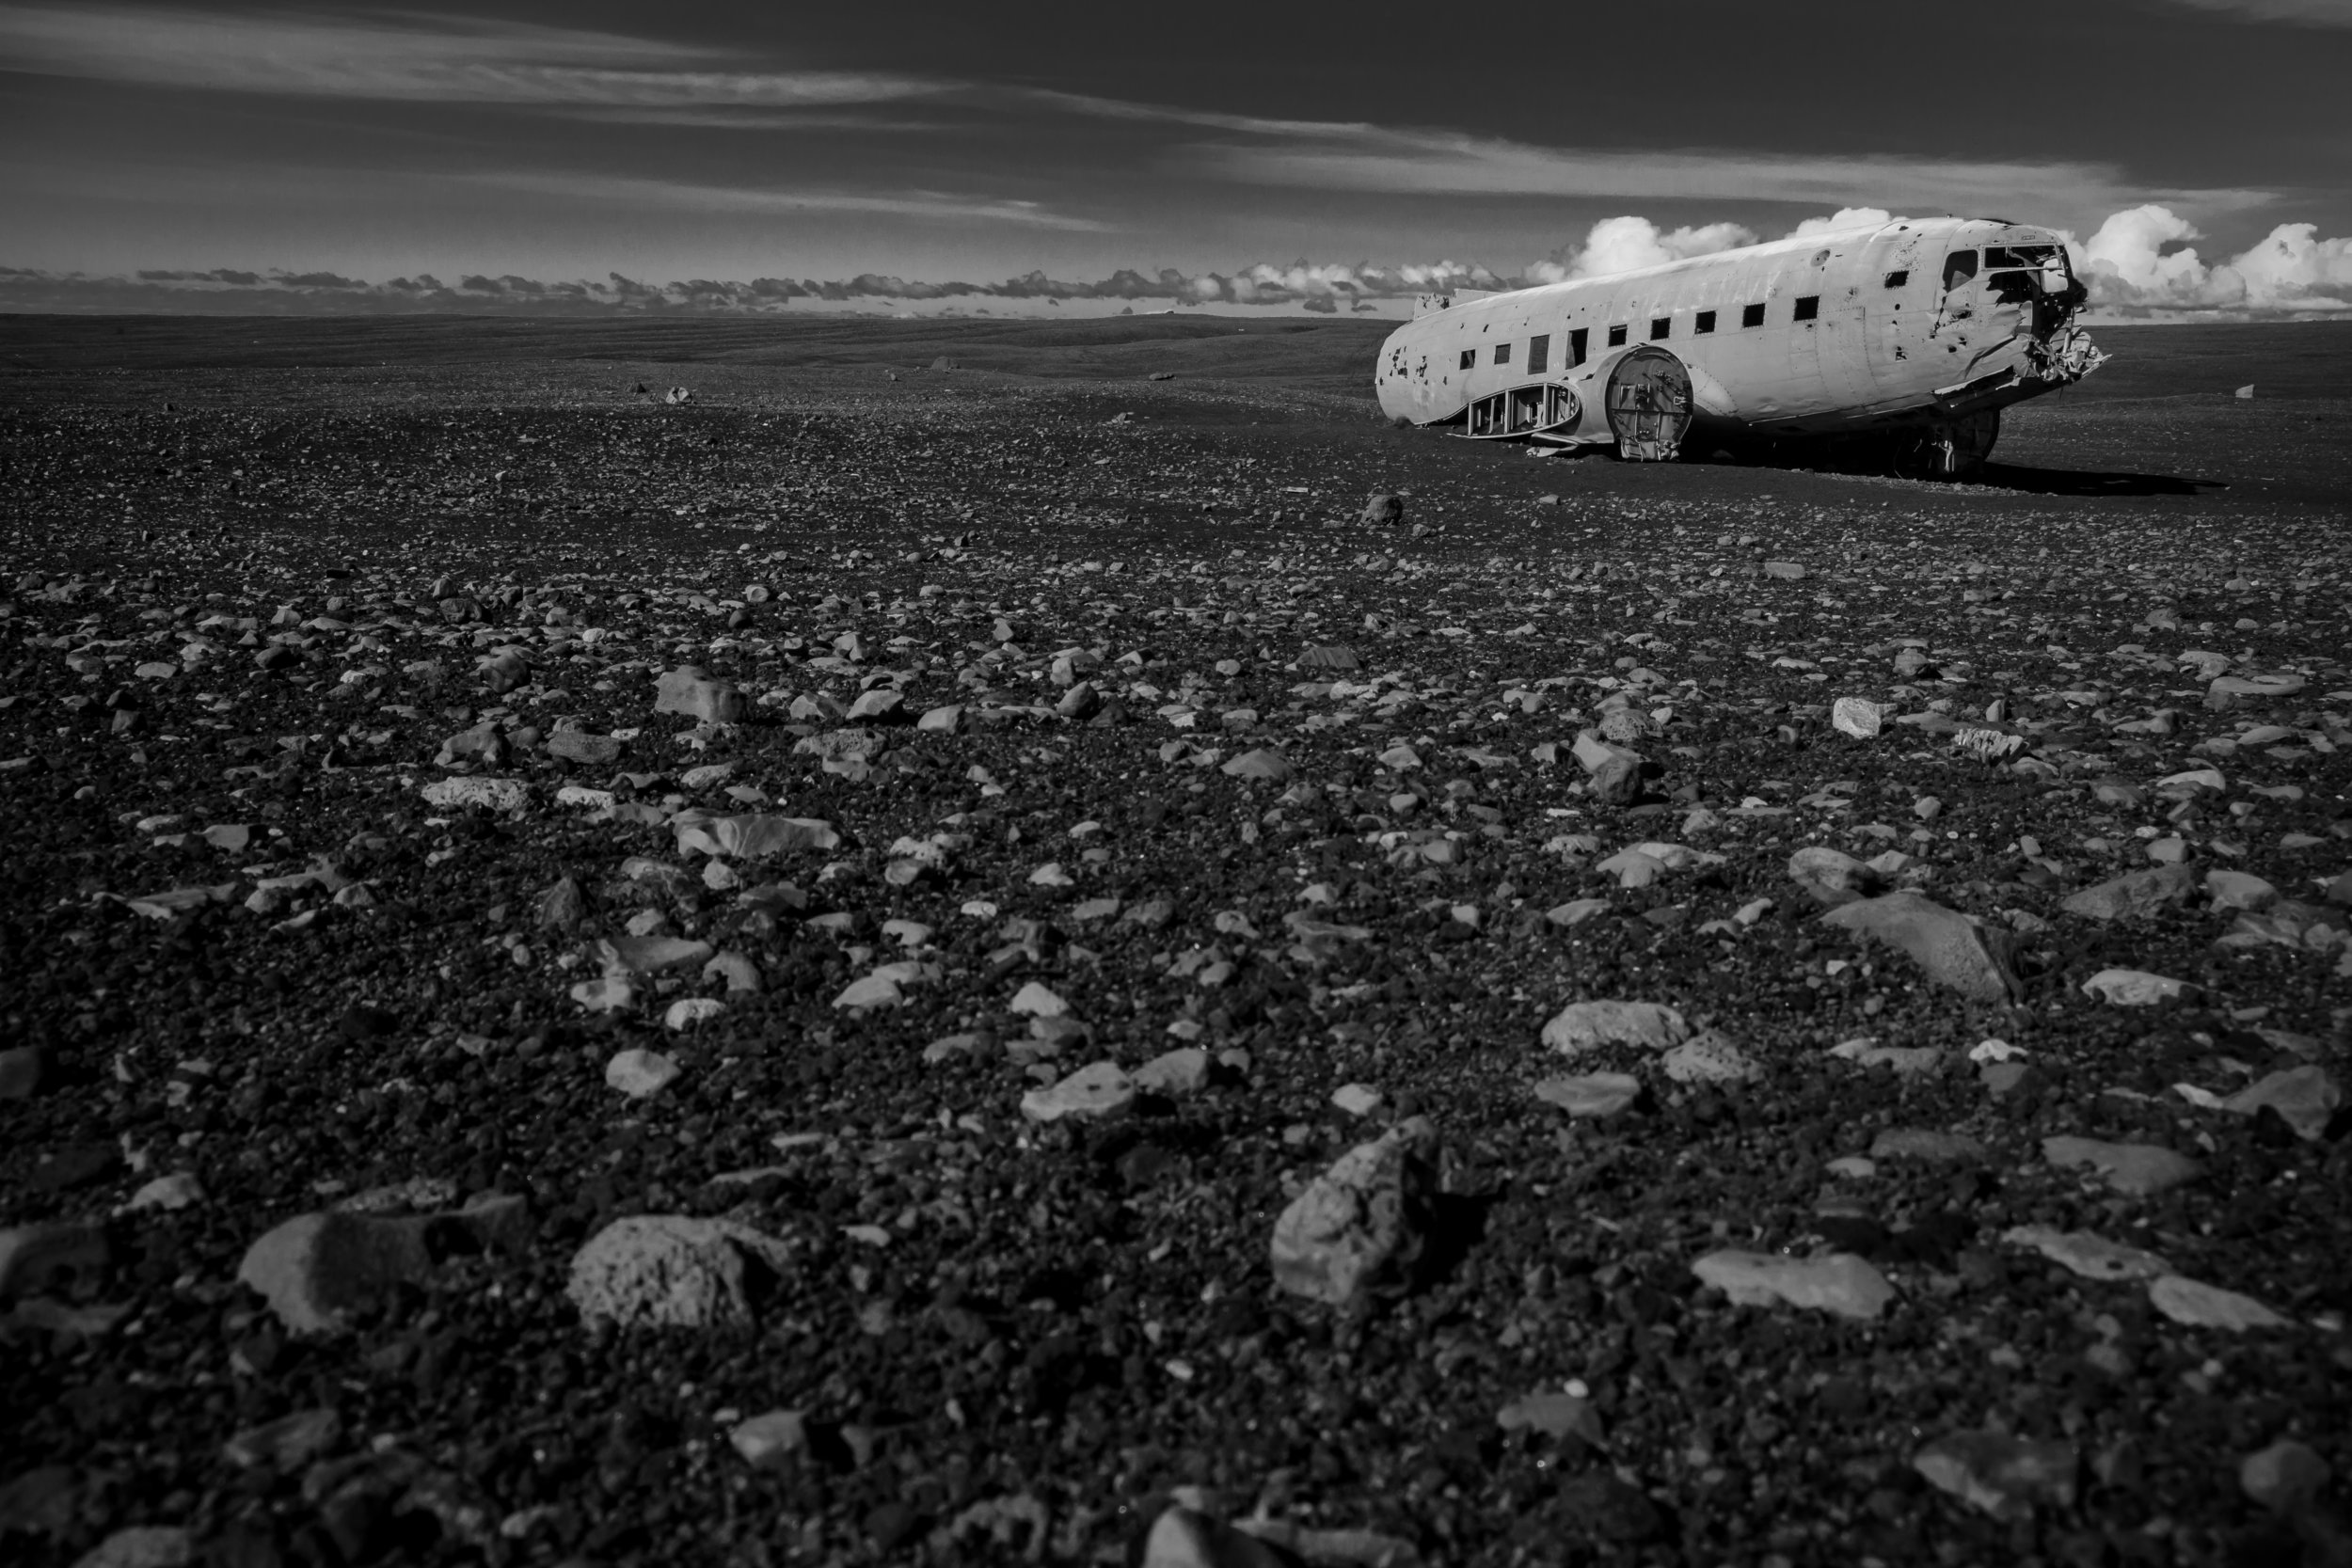 A spacecraft (or maybe an airplane?) crash landed on the black sands of Sólheimasandur.